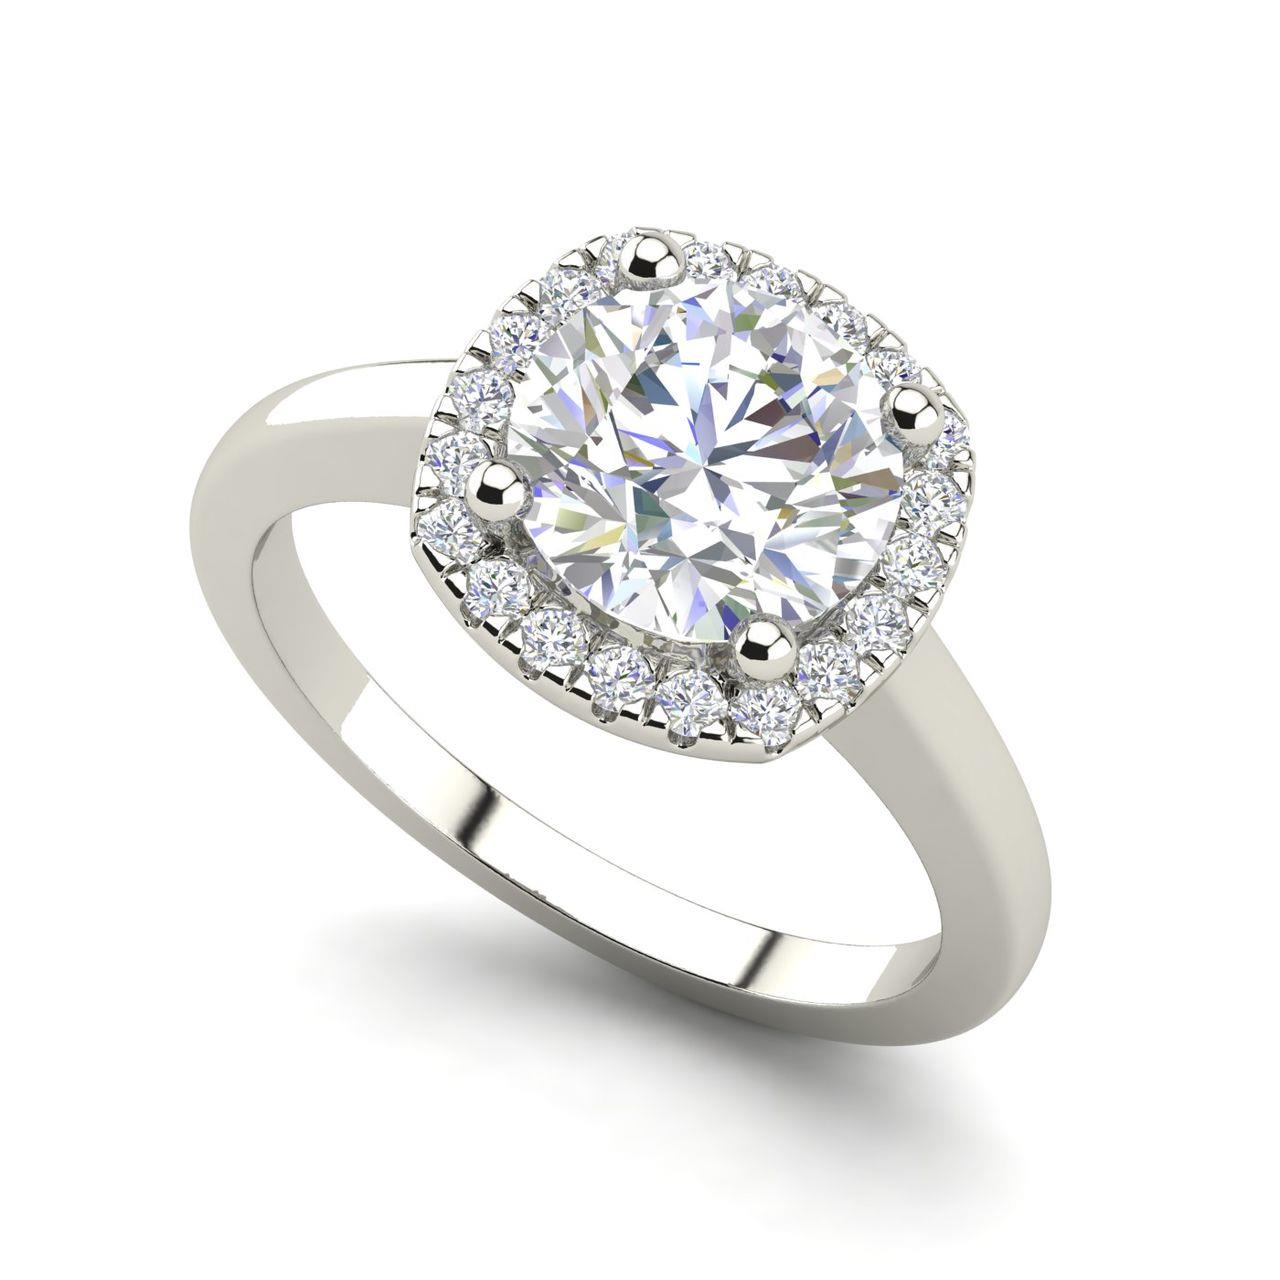 Halo 1.25 Carat Round Cut Diamond Engagement Ring